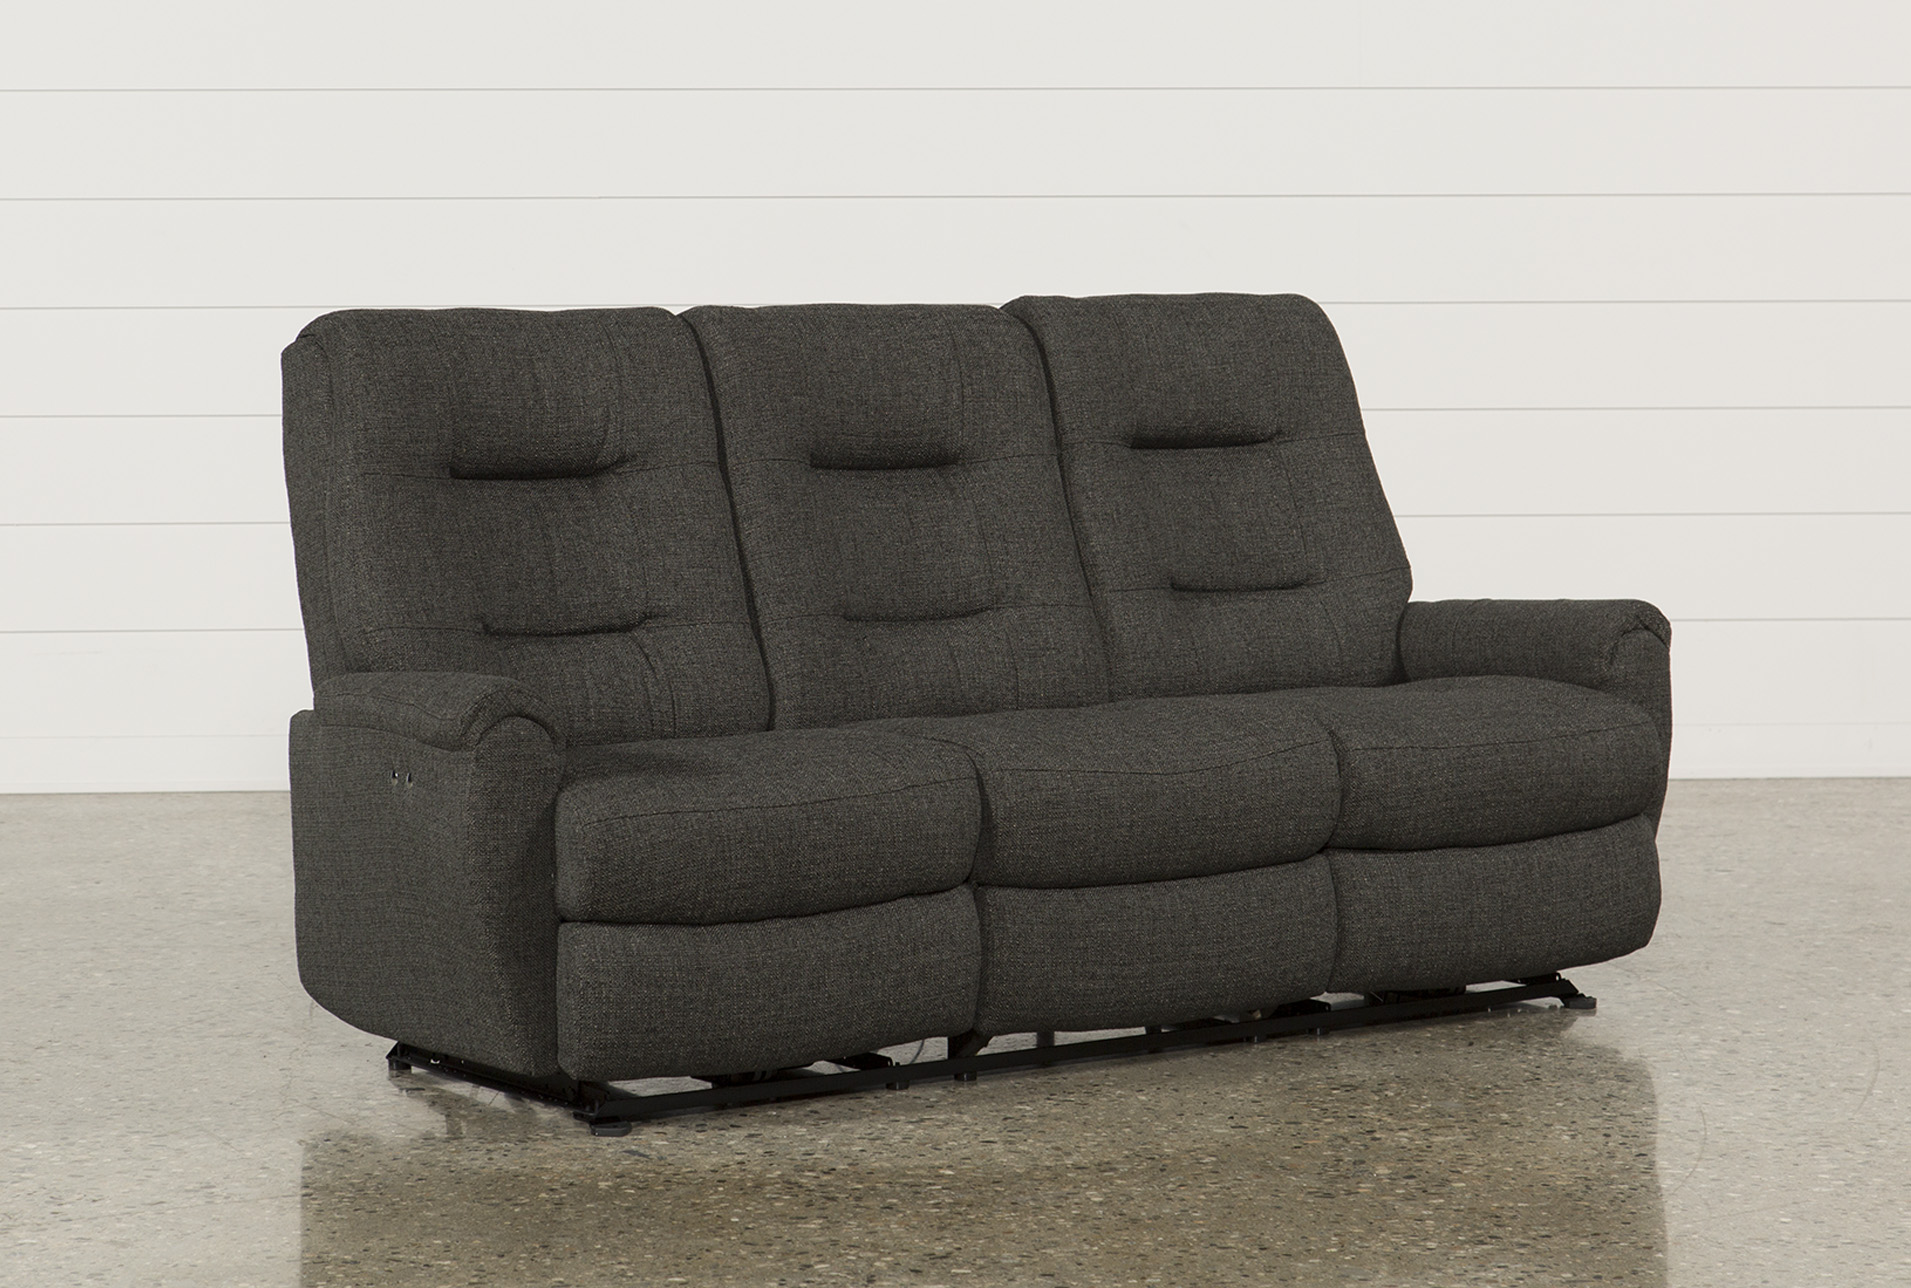 Charmant Jaden Fabric Power Reclining Sofa (Qty: 1) Has Been Successfully Added To  Your Cart.